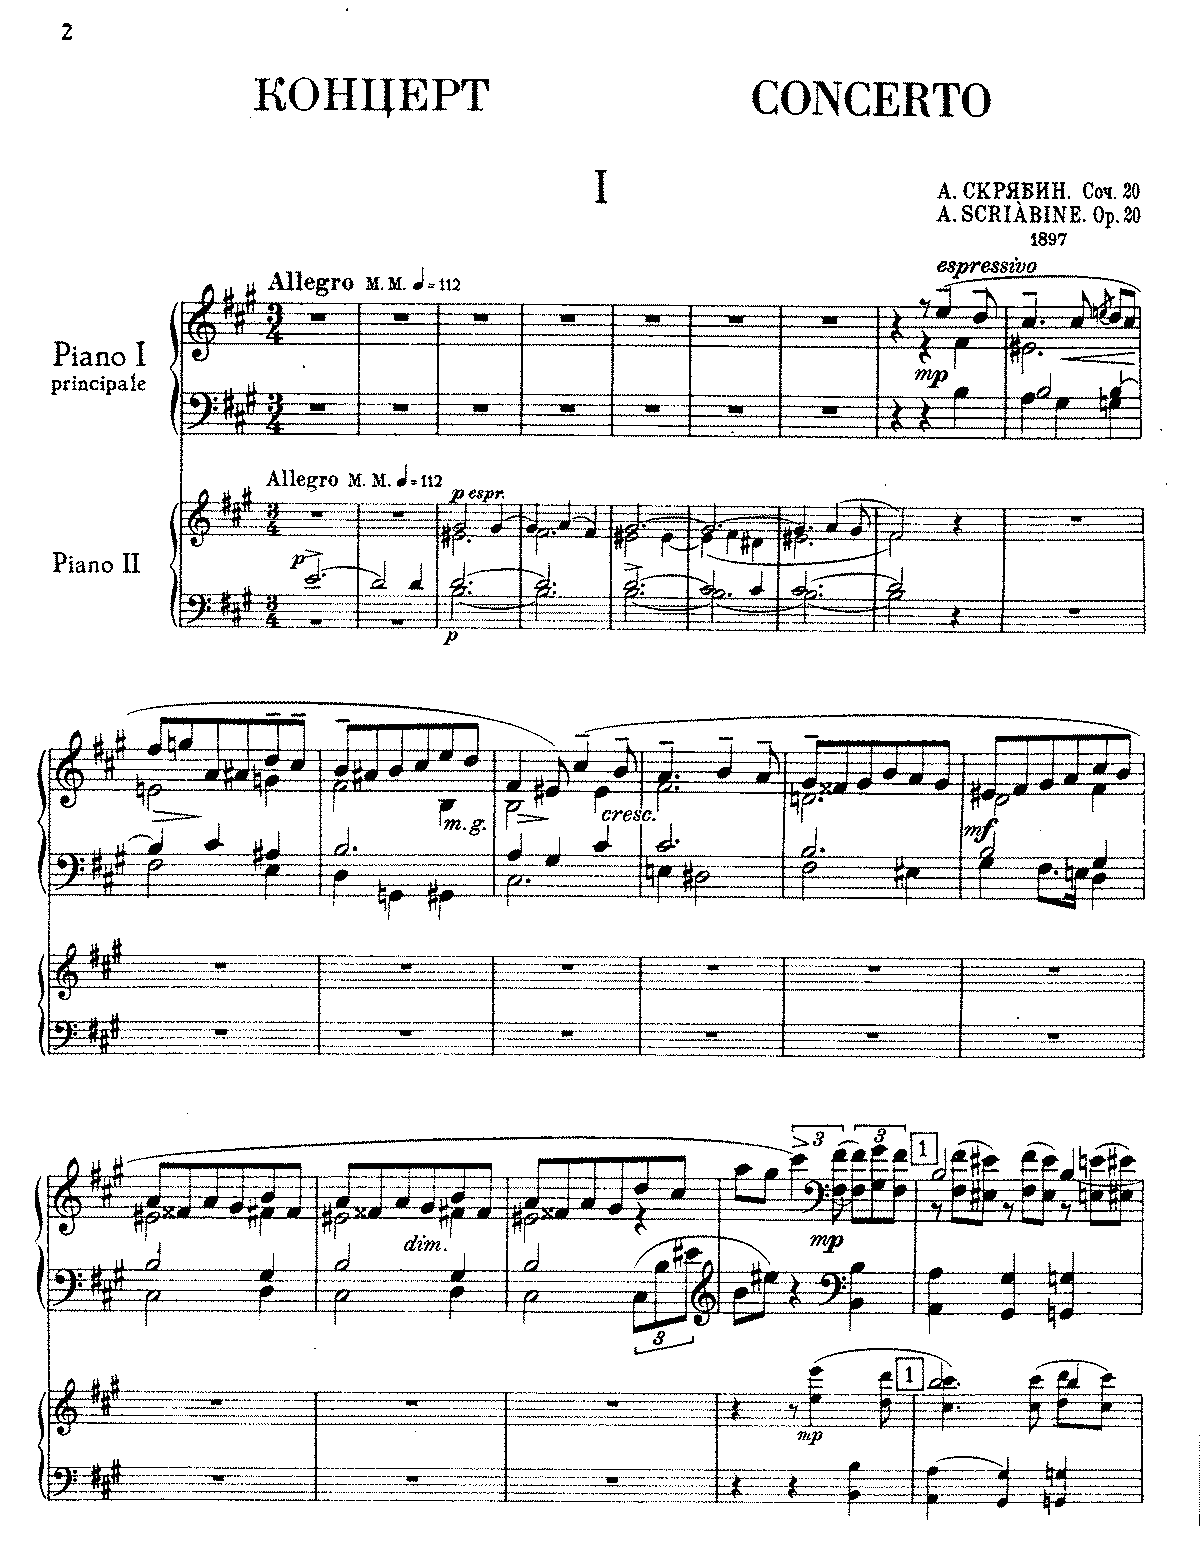 Scriabin - Concerto - Two pianos.pdf